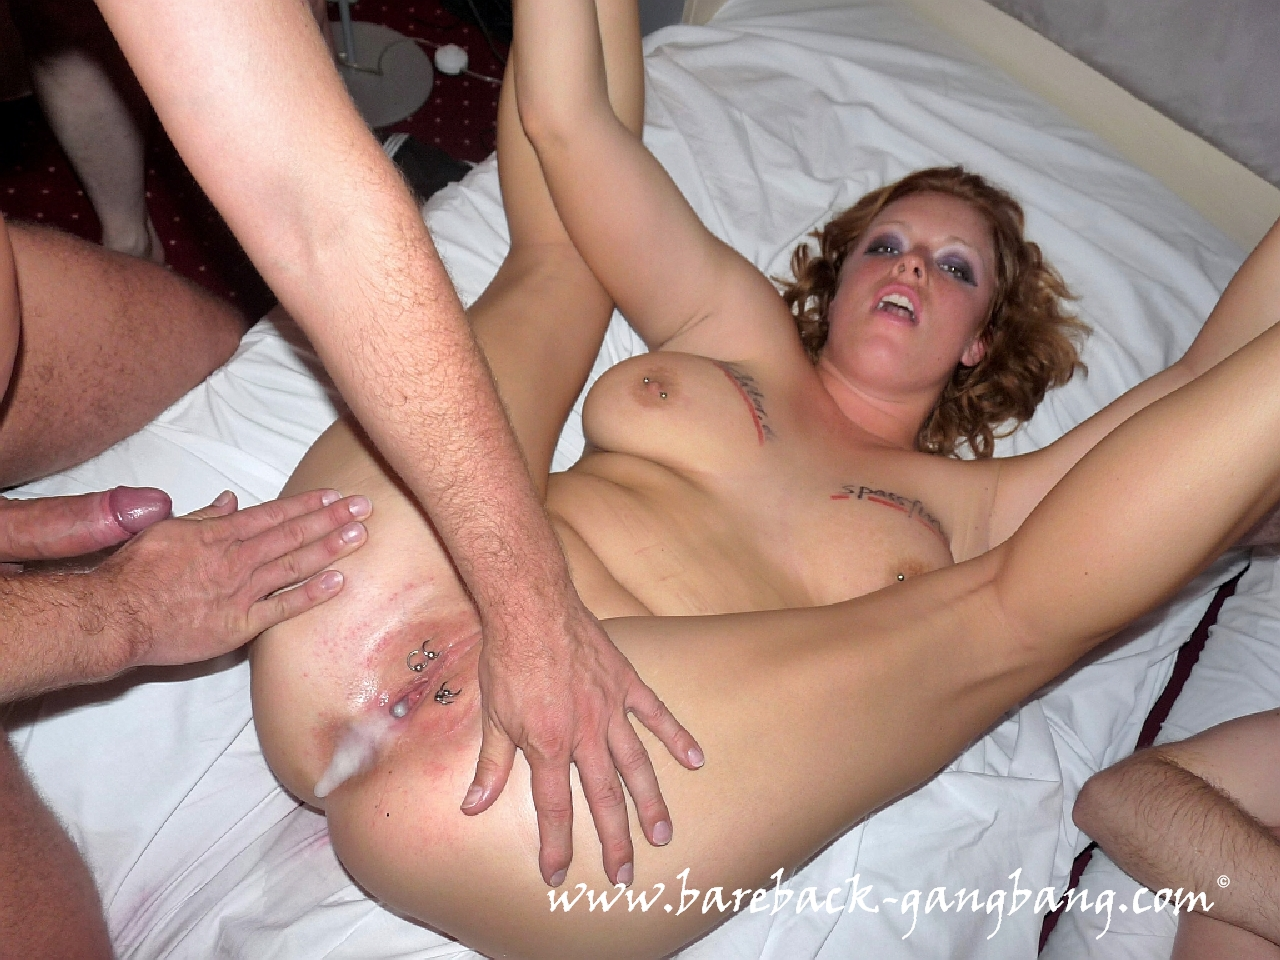 Couple bed dildo lesbian